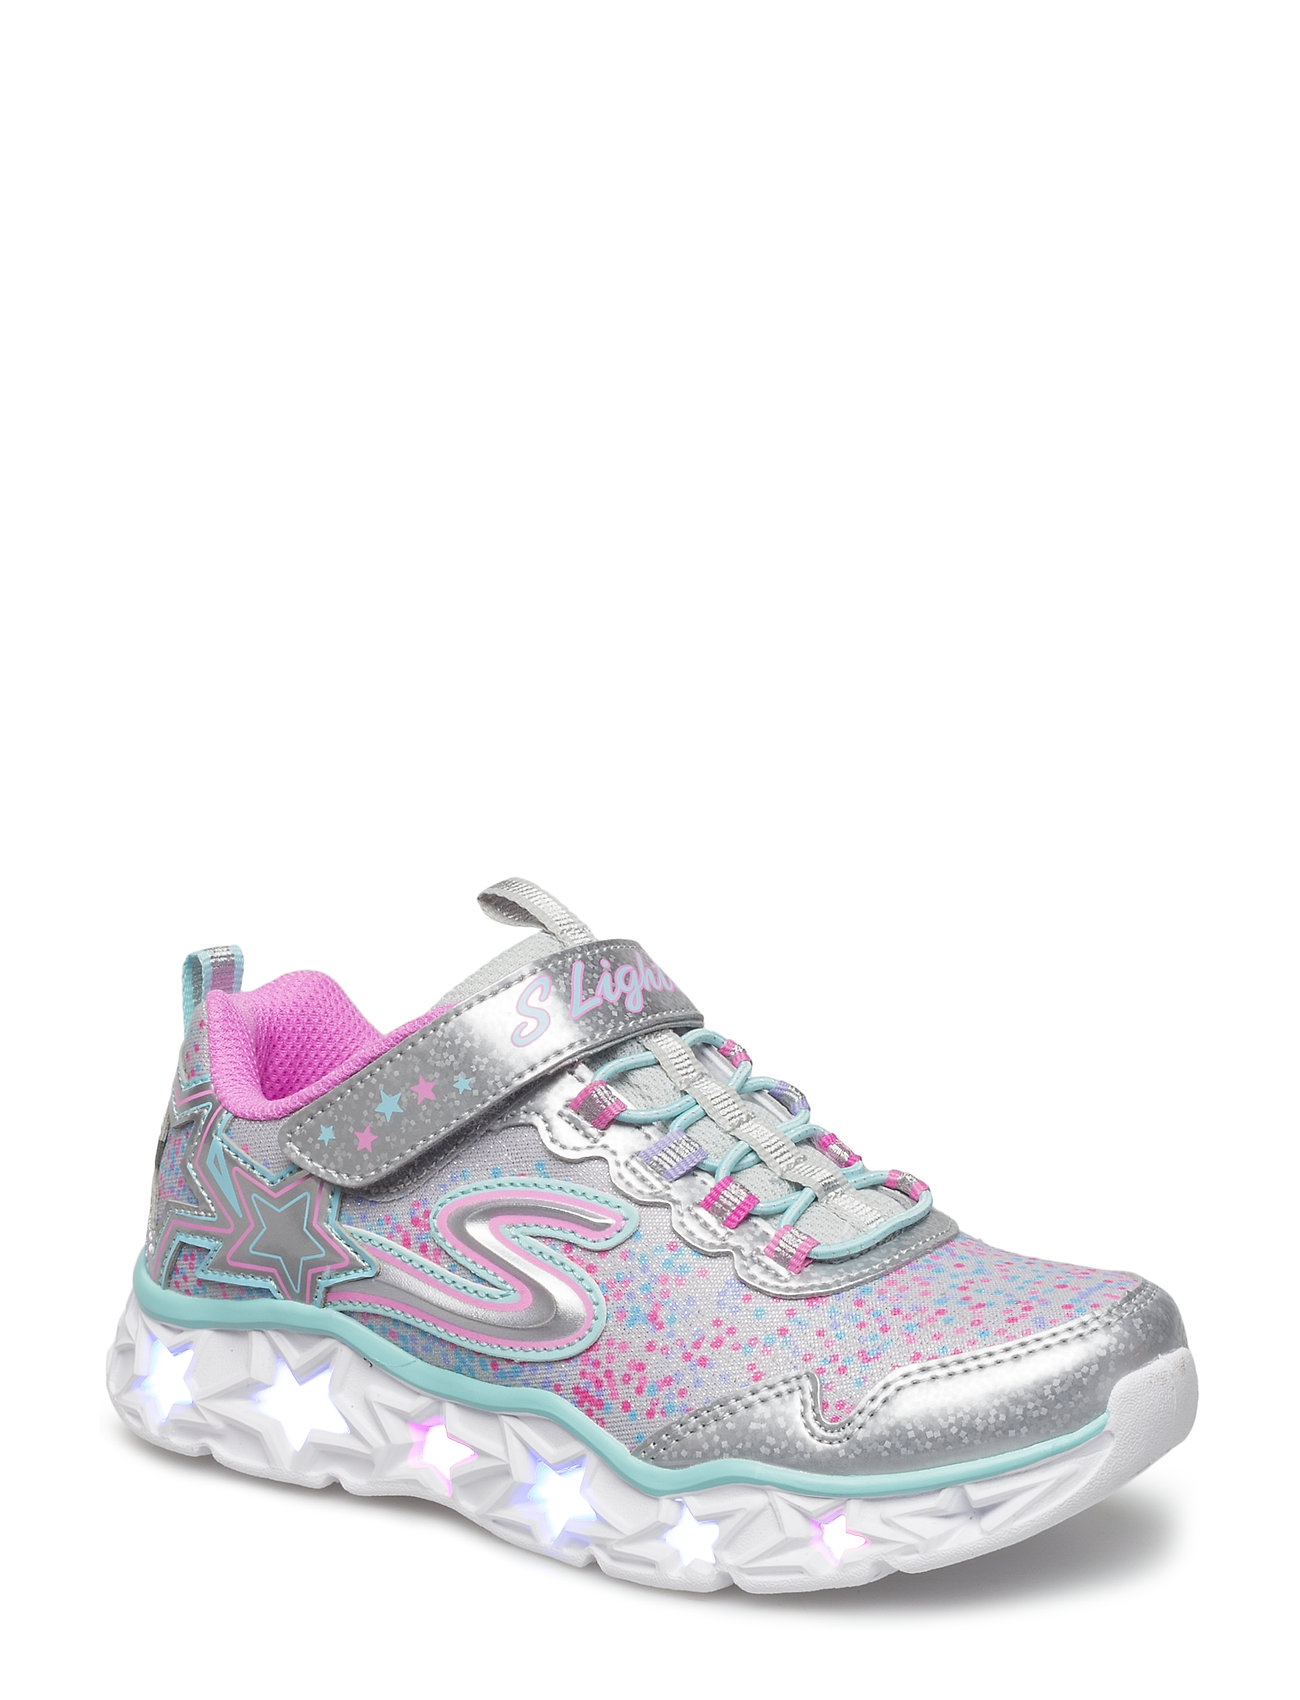 Skechers Girls Galaxy Light - SMLT SILVER MULTICOLOR